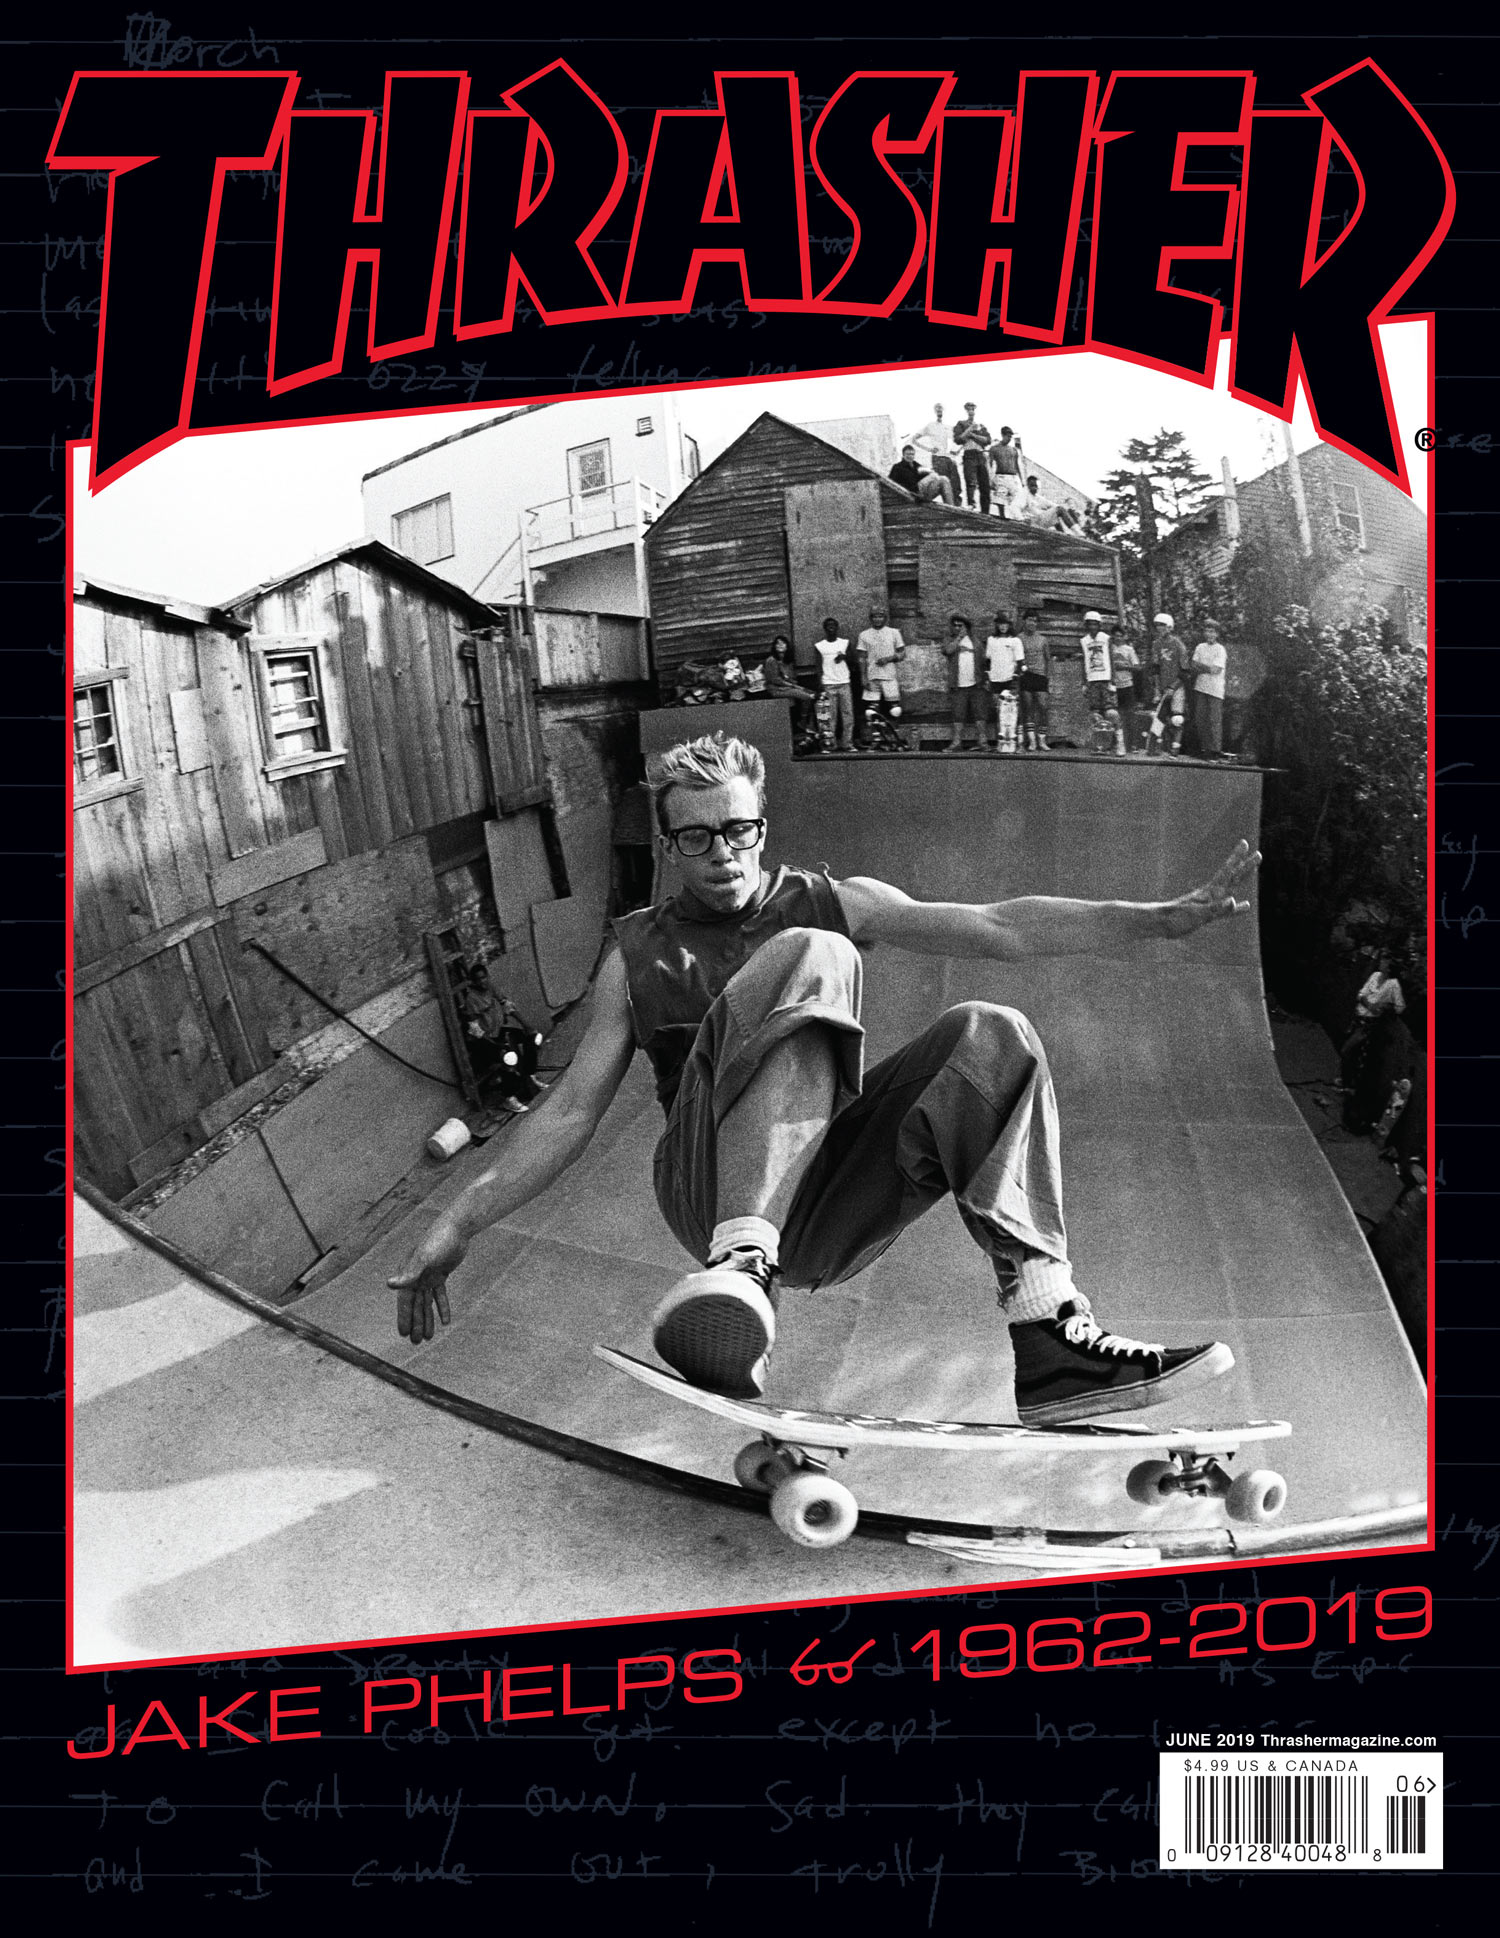 THRASHER MAGAZINE časopis JÚN 2019 (JAKE PHELPS tribute)